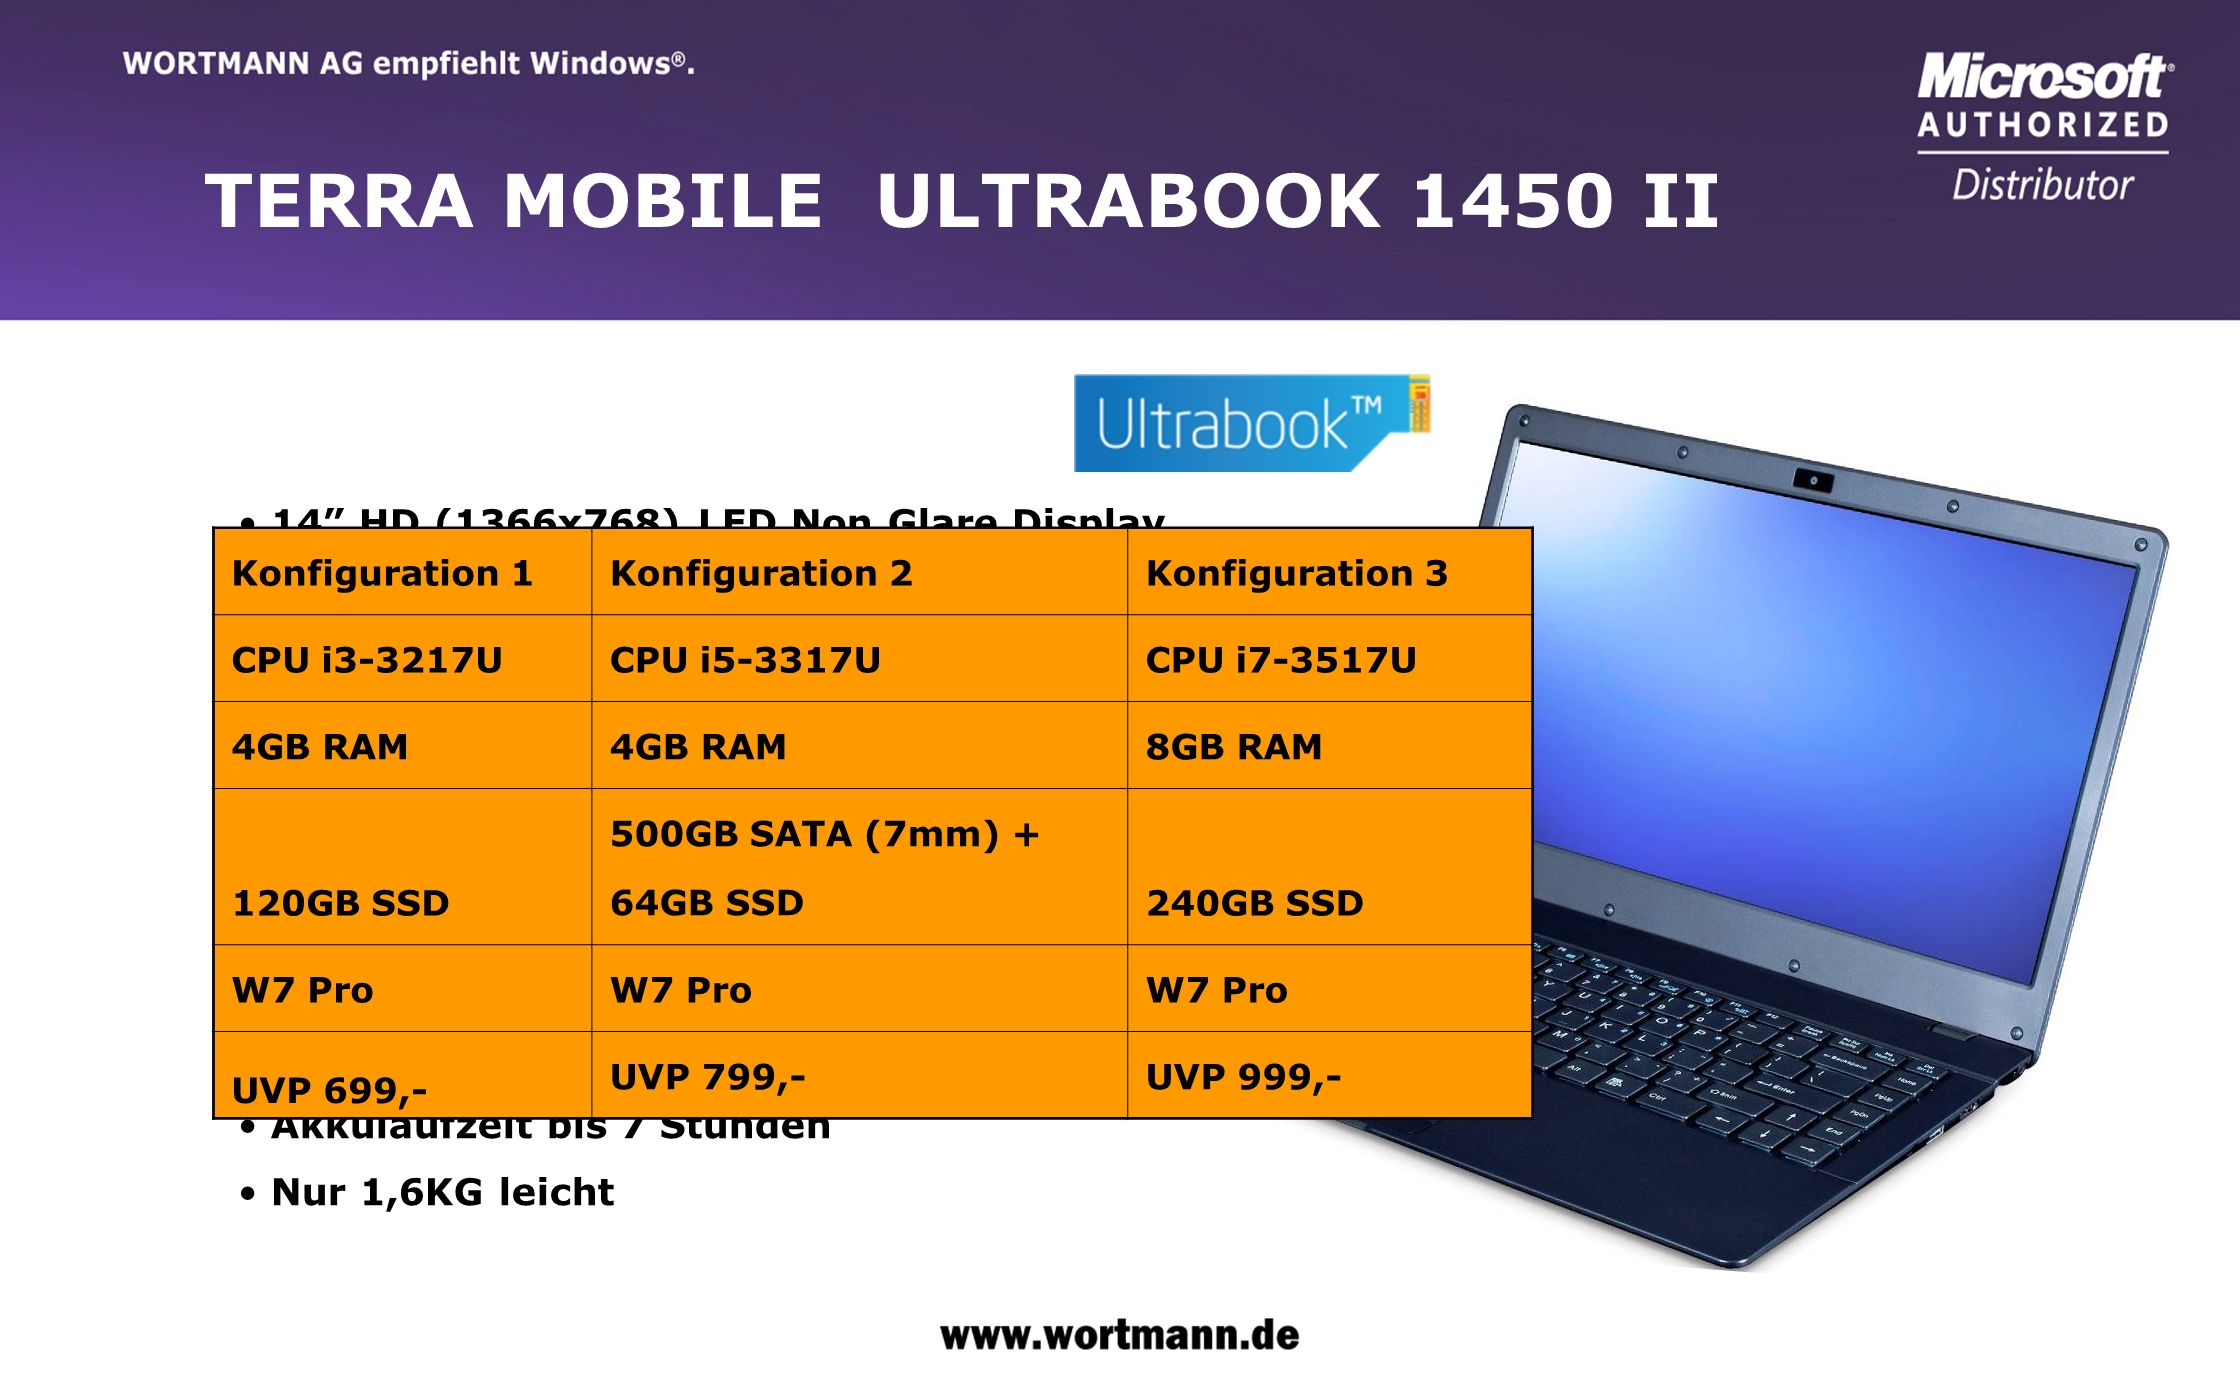 TERRA MOBILE ULTRABOOK 1450 II